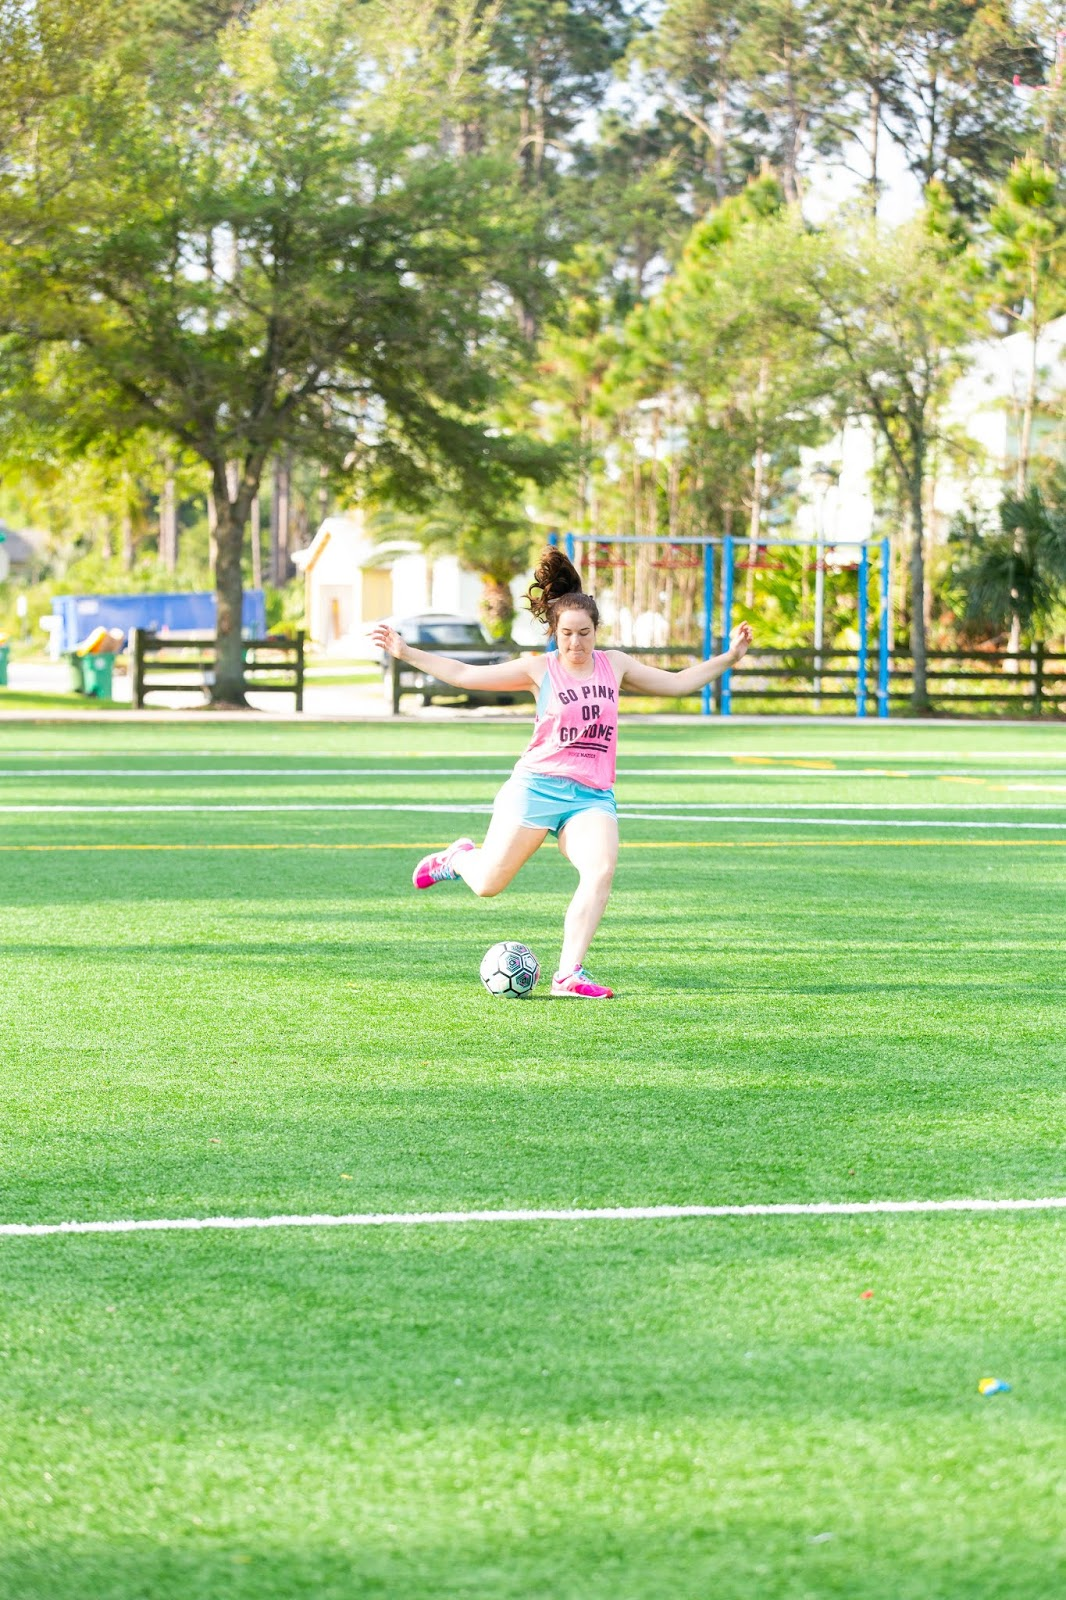 Brunette girl wearing victoria's secret pink tank top and nike blue running shorts playing soccer on a soccer field